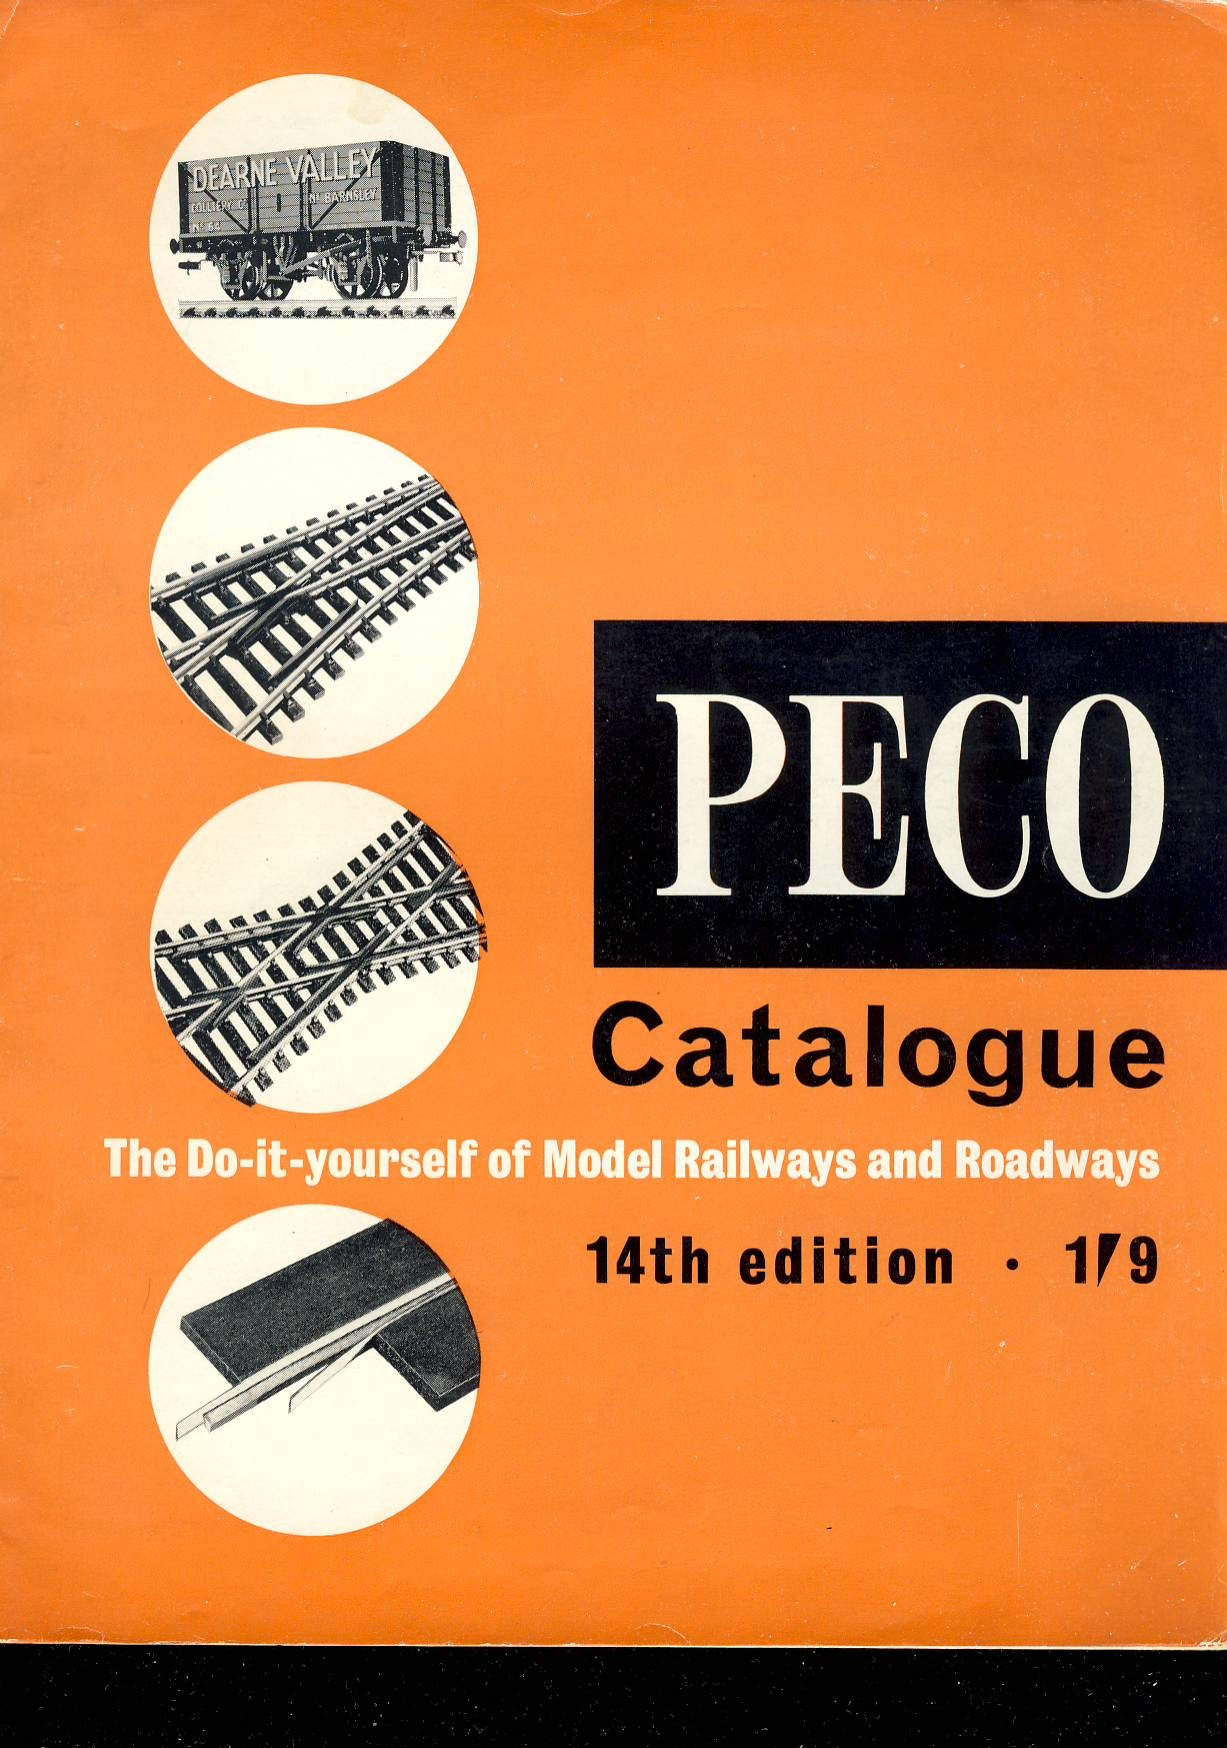 1965 32 page vintage catalogue in good clean condtion. Light handling marks on cover. ref098